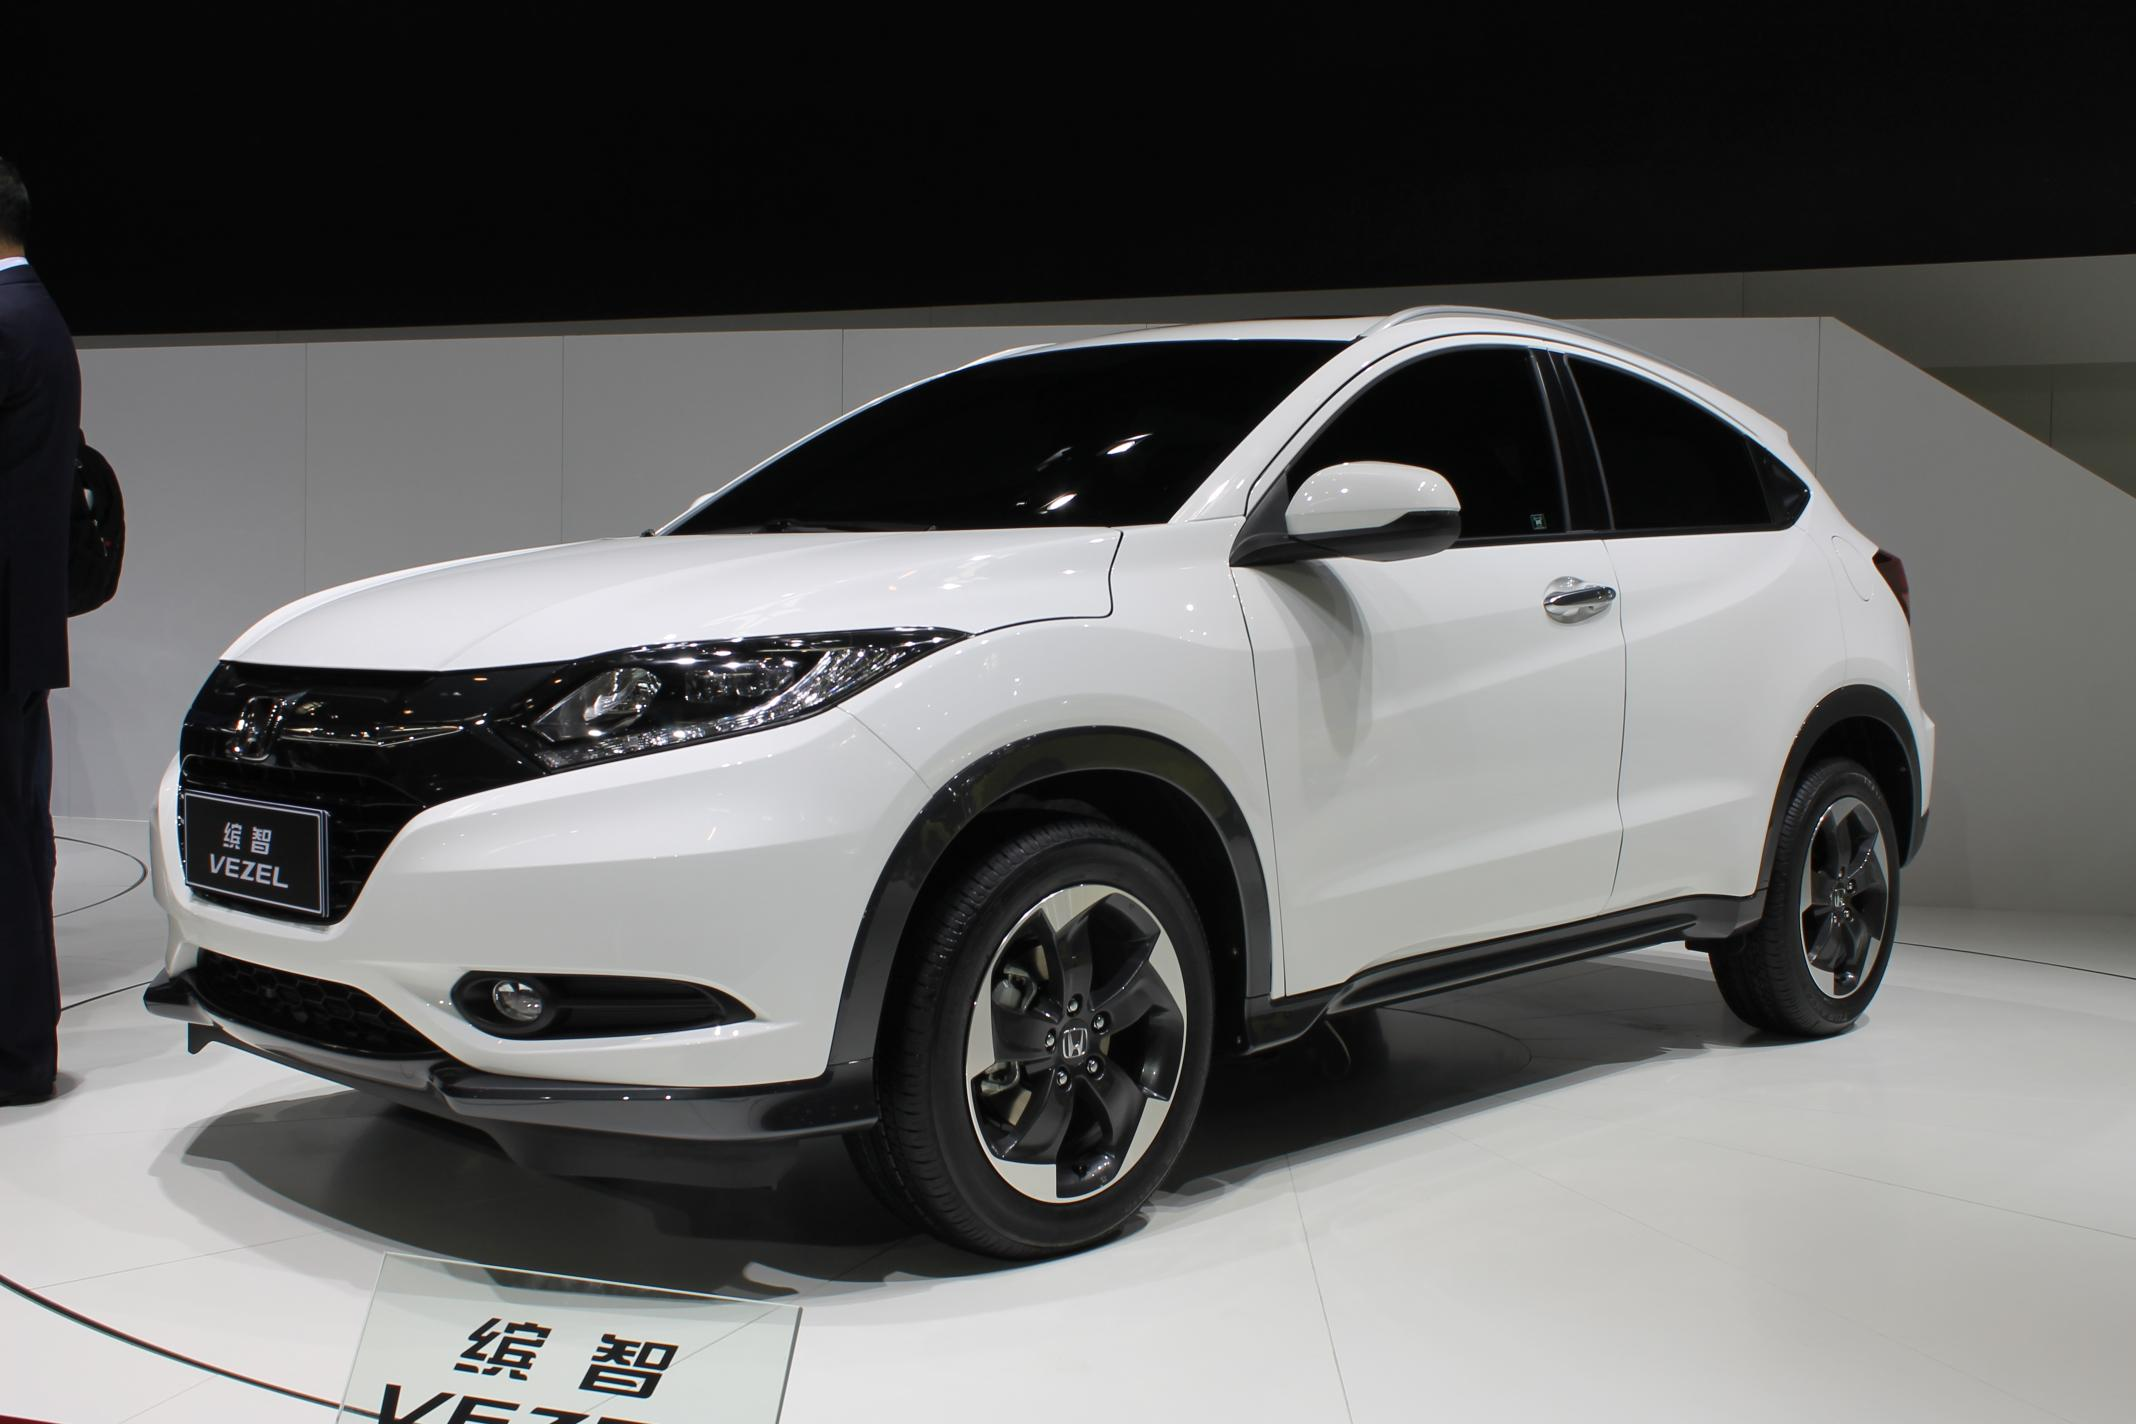 honda vezel aka hr-v launch confirmed for indonesia - india car news